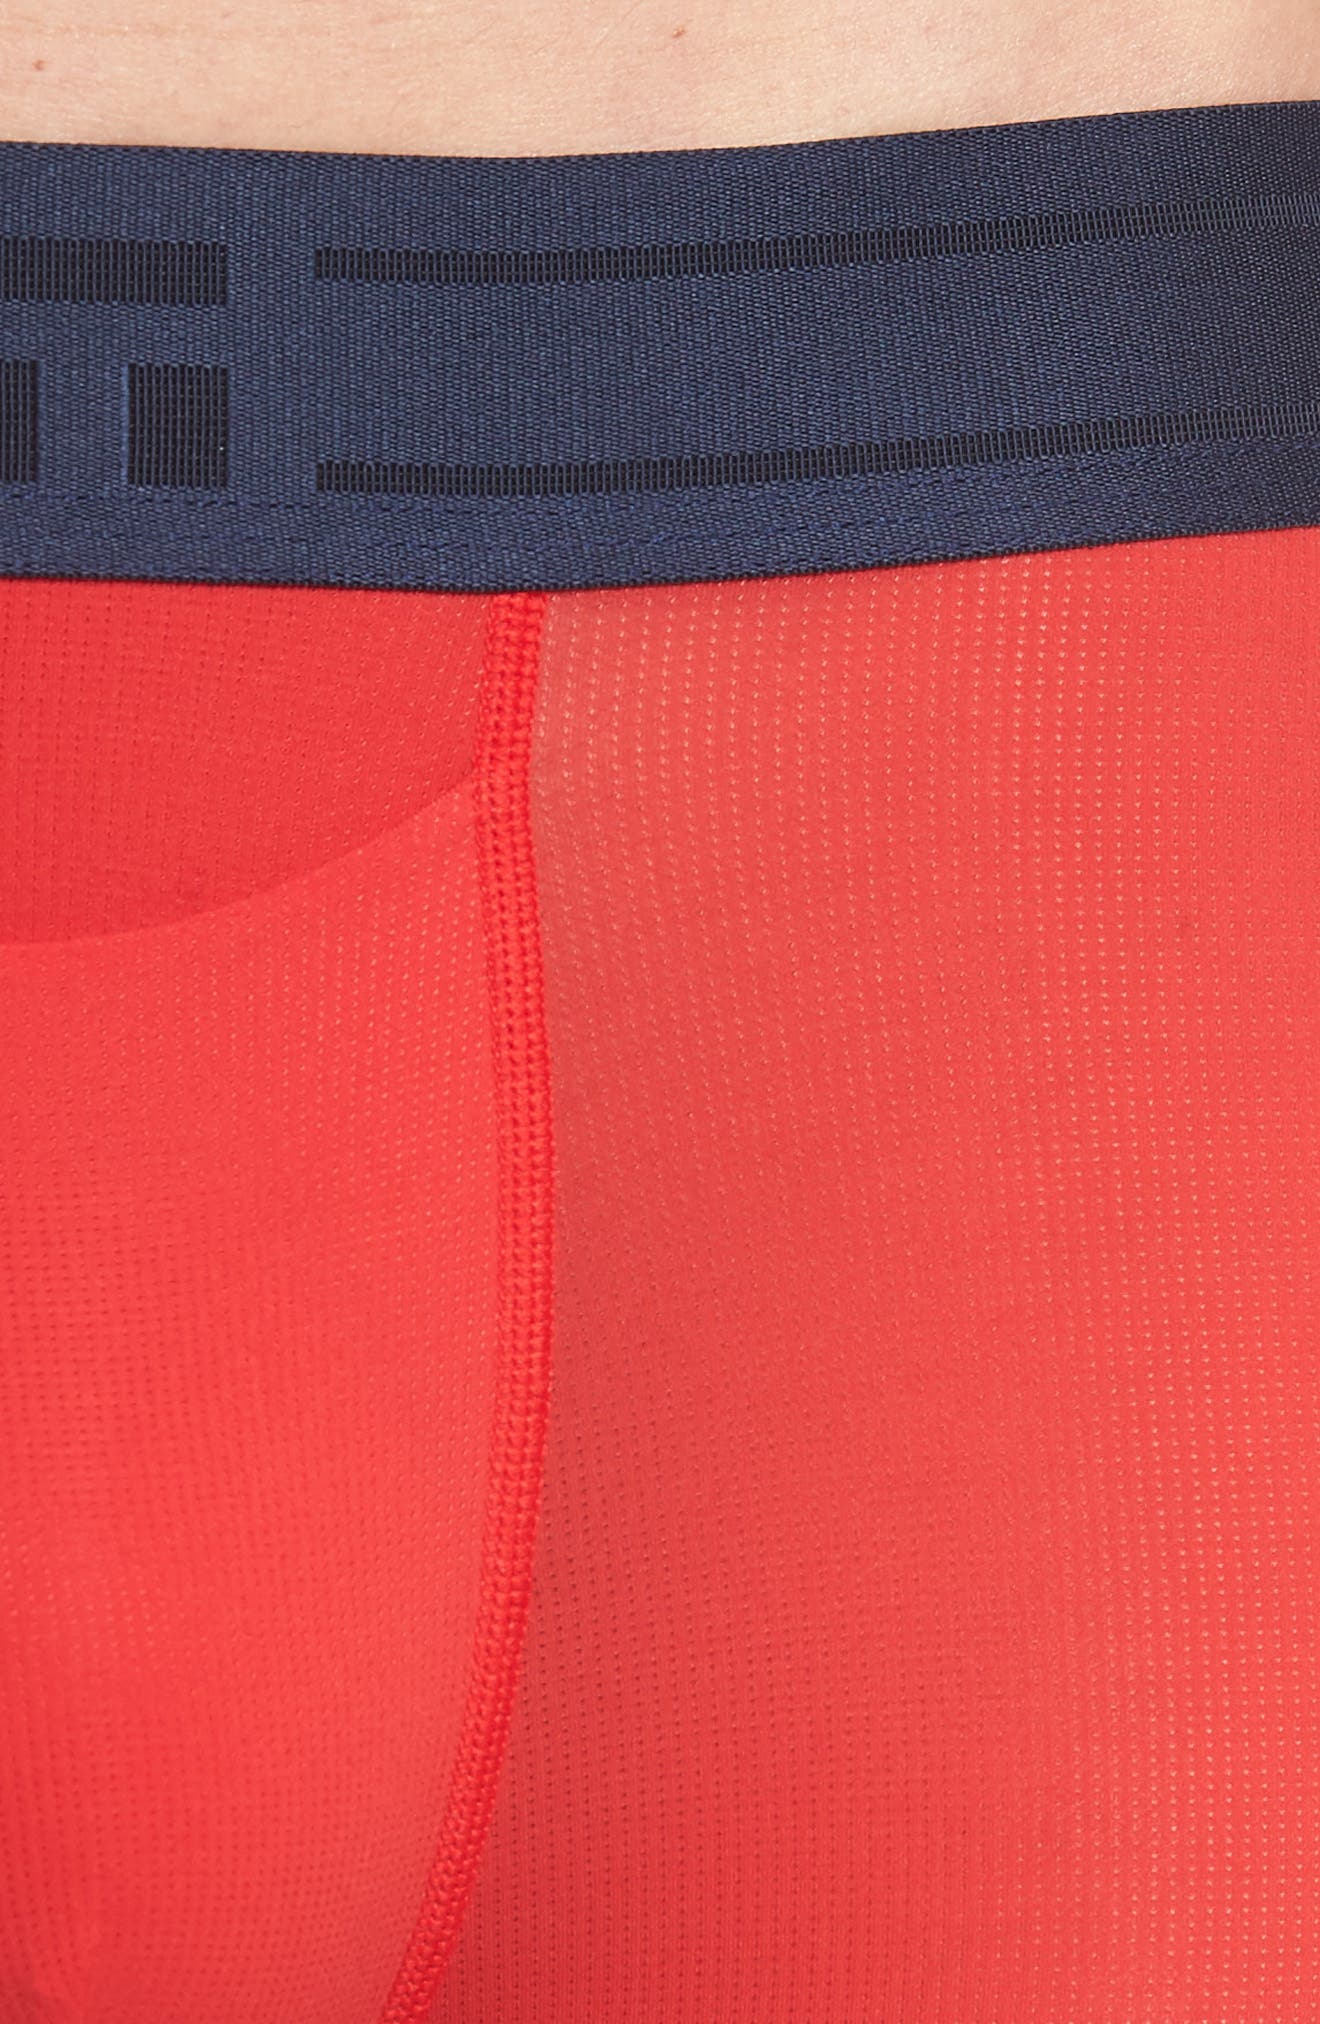 Air Boxer Briefs,                             Alternate thumbnail 4, color,                             True Red